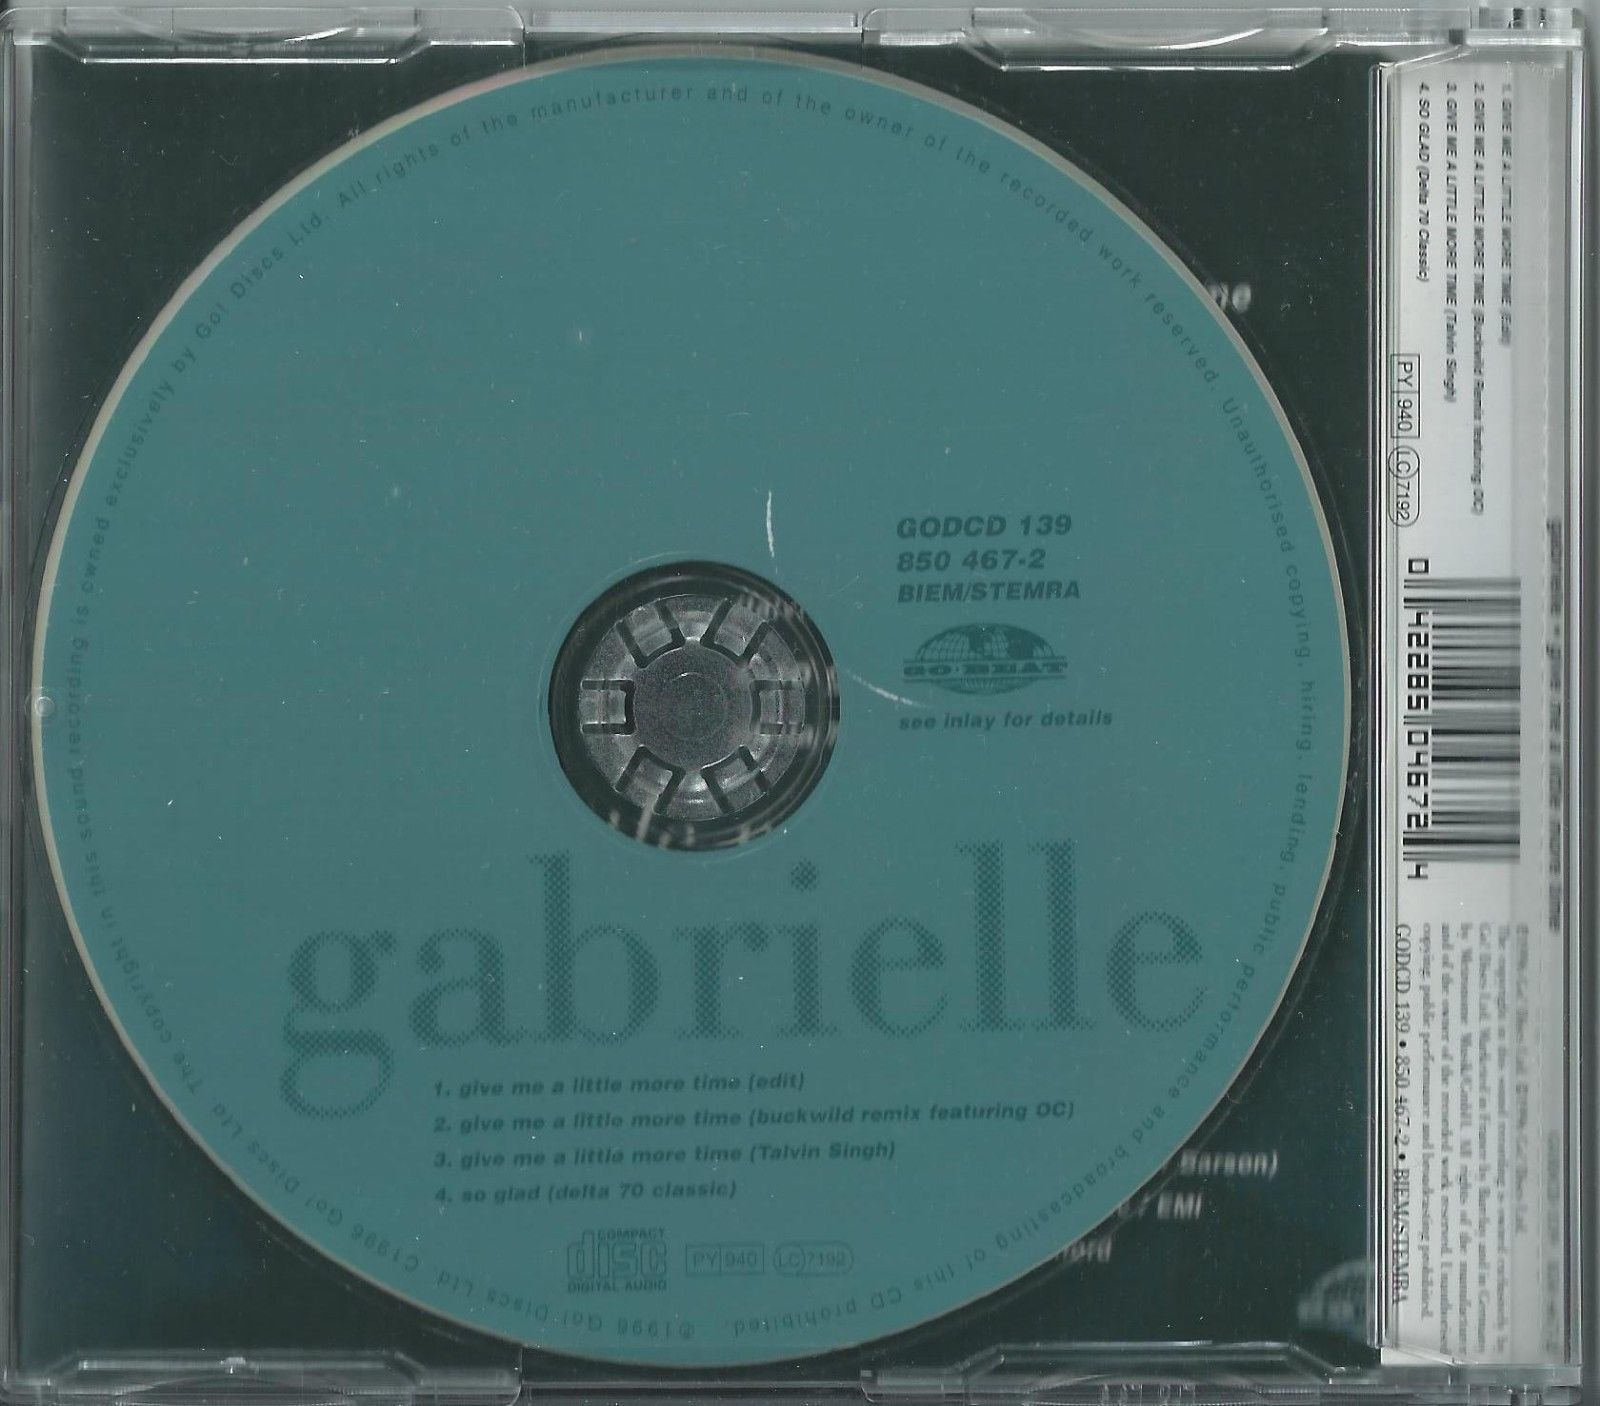 GABRIELLE - GIVE ME A LITTLE MORE TIME / SO GLAD 1996 UK 4 TRACK CD SINGLE